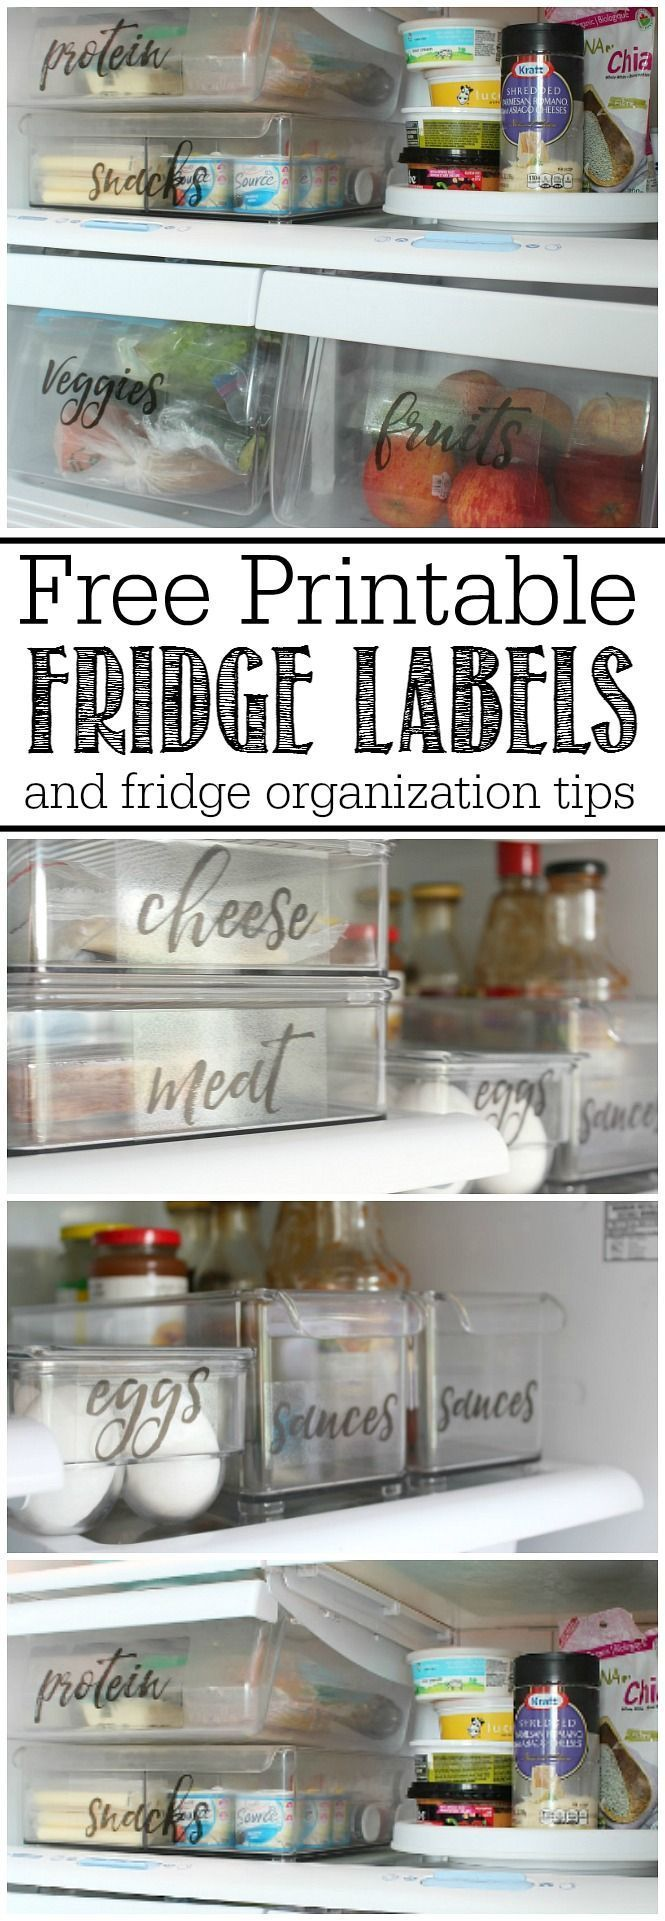 141 best Organizing - Labels images on Pinterest | Households, Cards ...